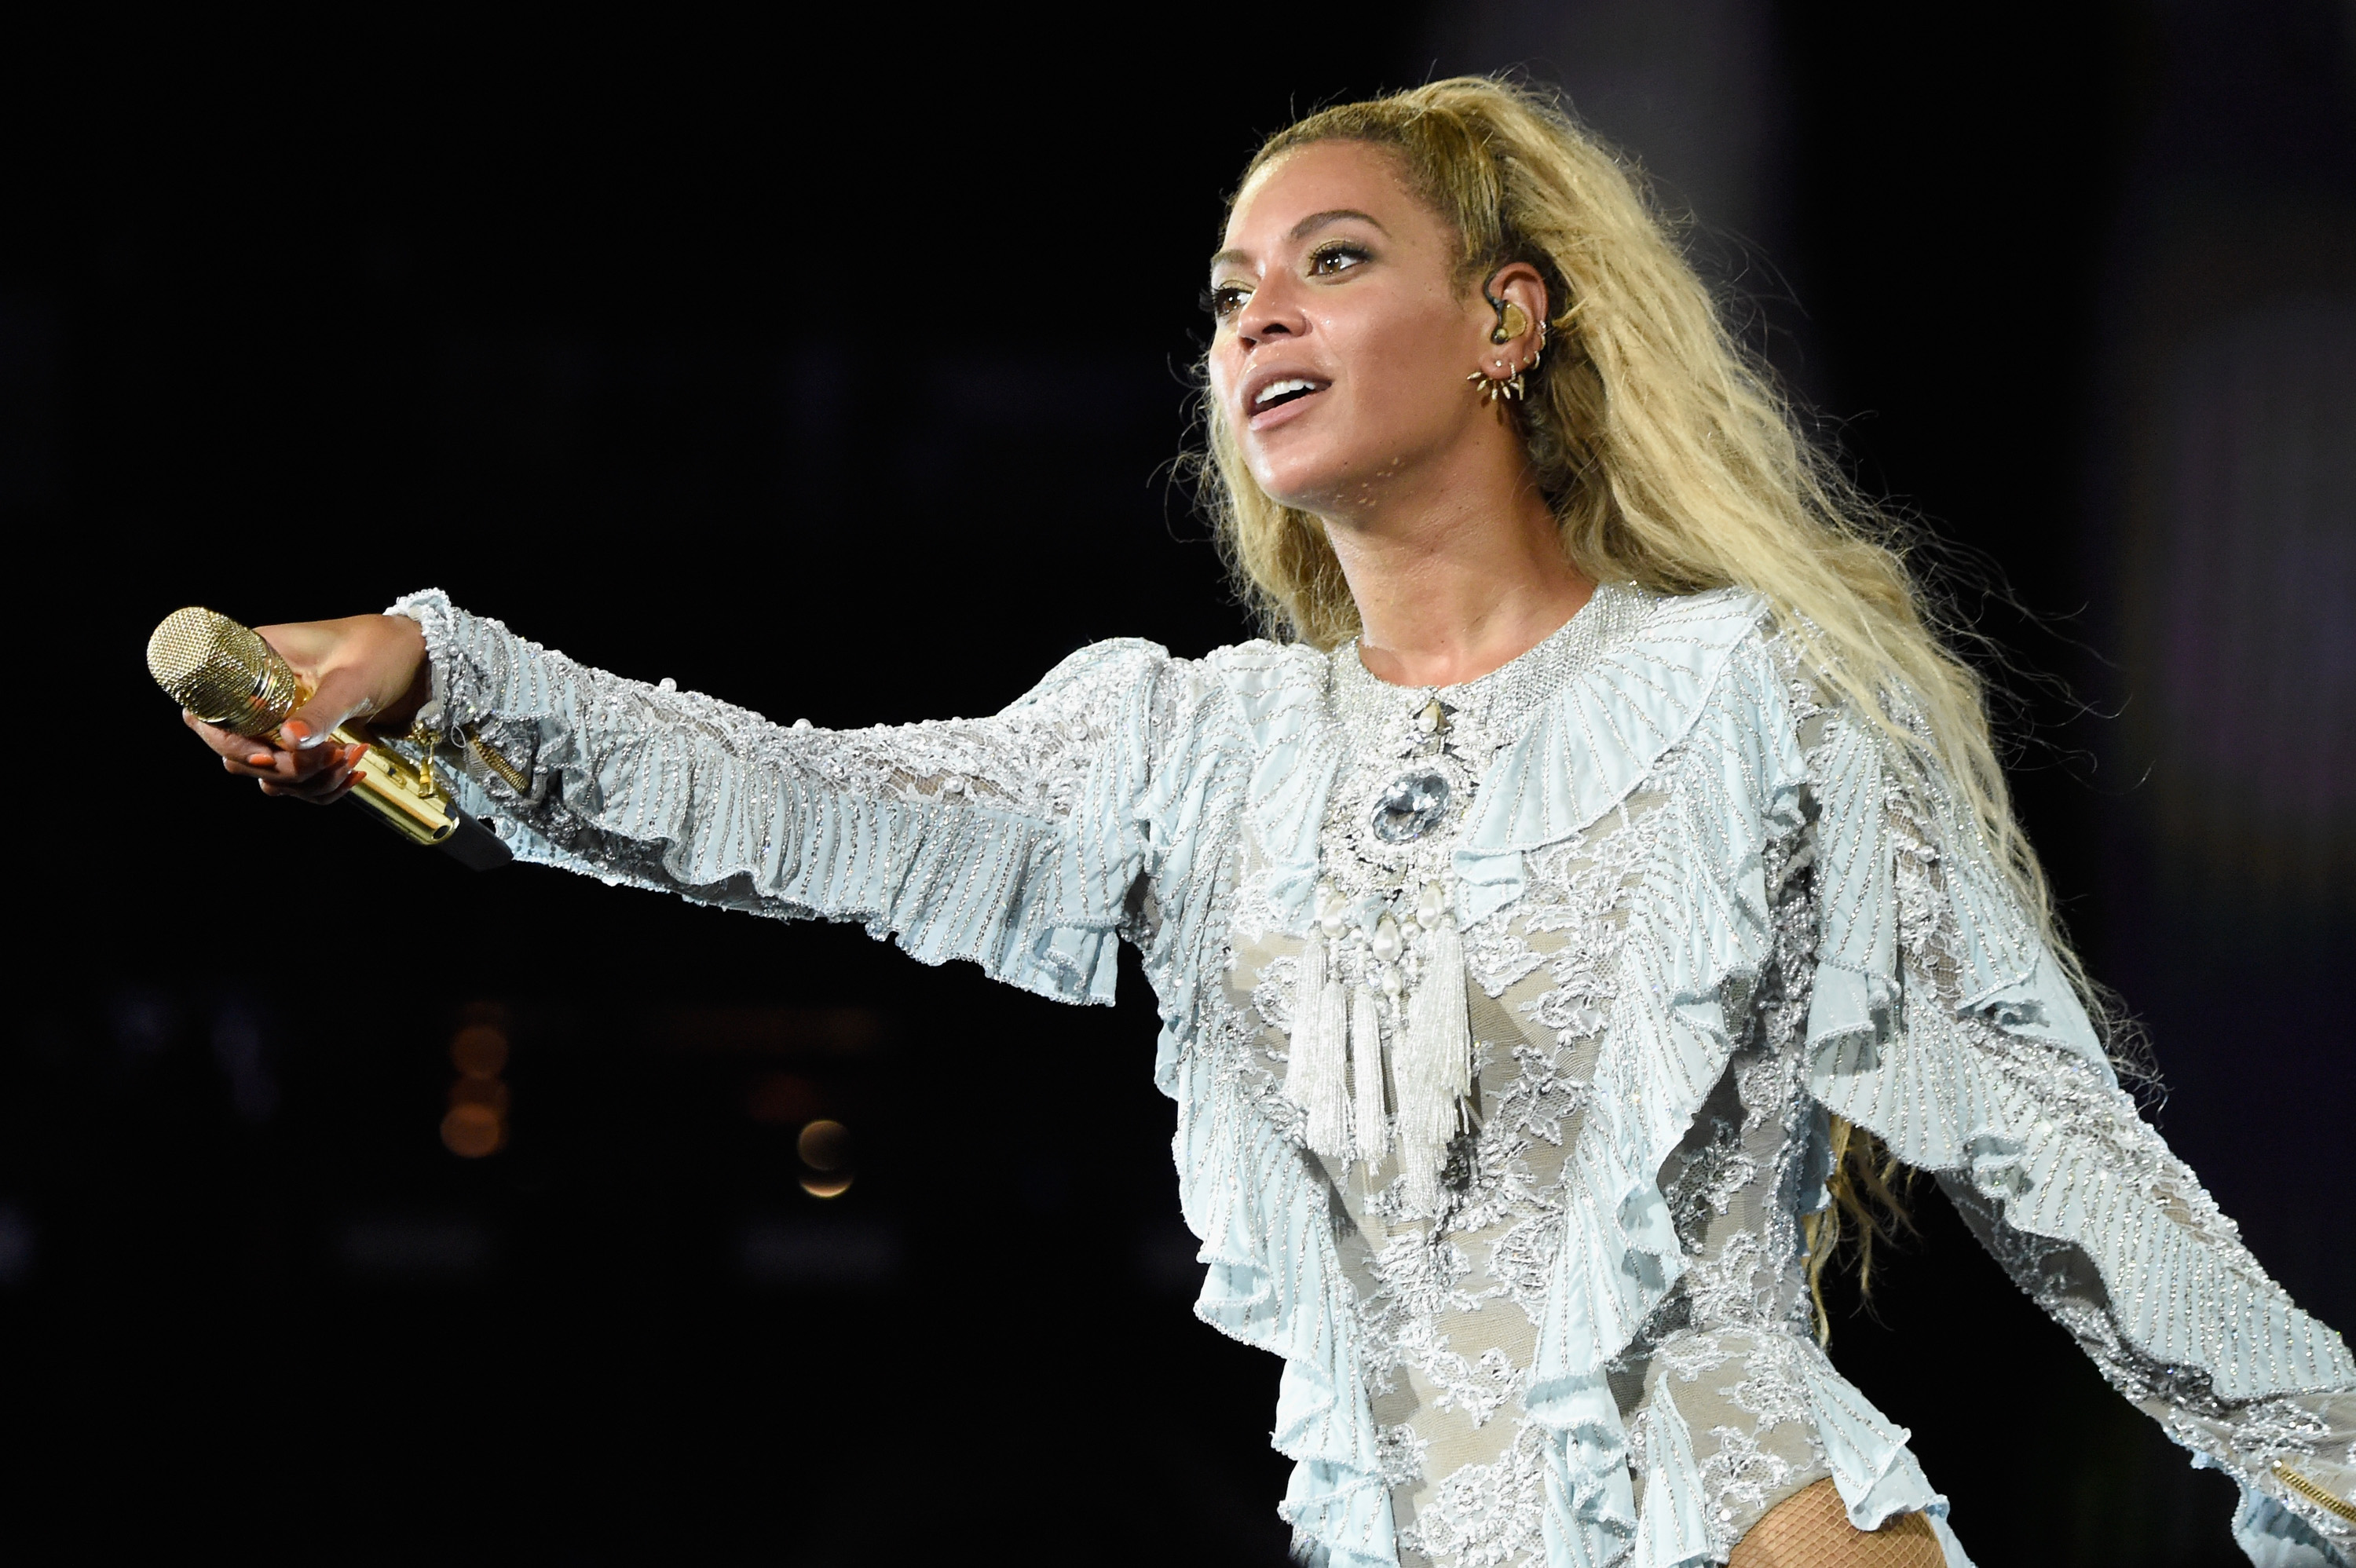 Entertainer Beyonce performs on stage during  The Formation World Tour  at Levi's Stadium on September 17, 2016 in Santa Clara, California.